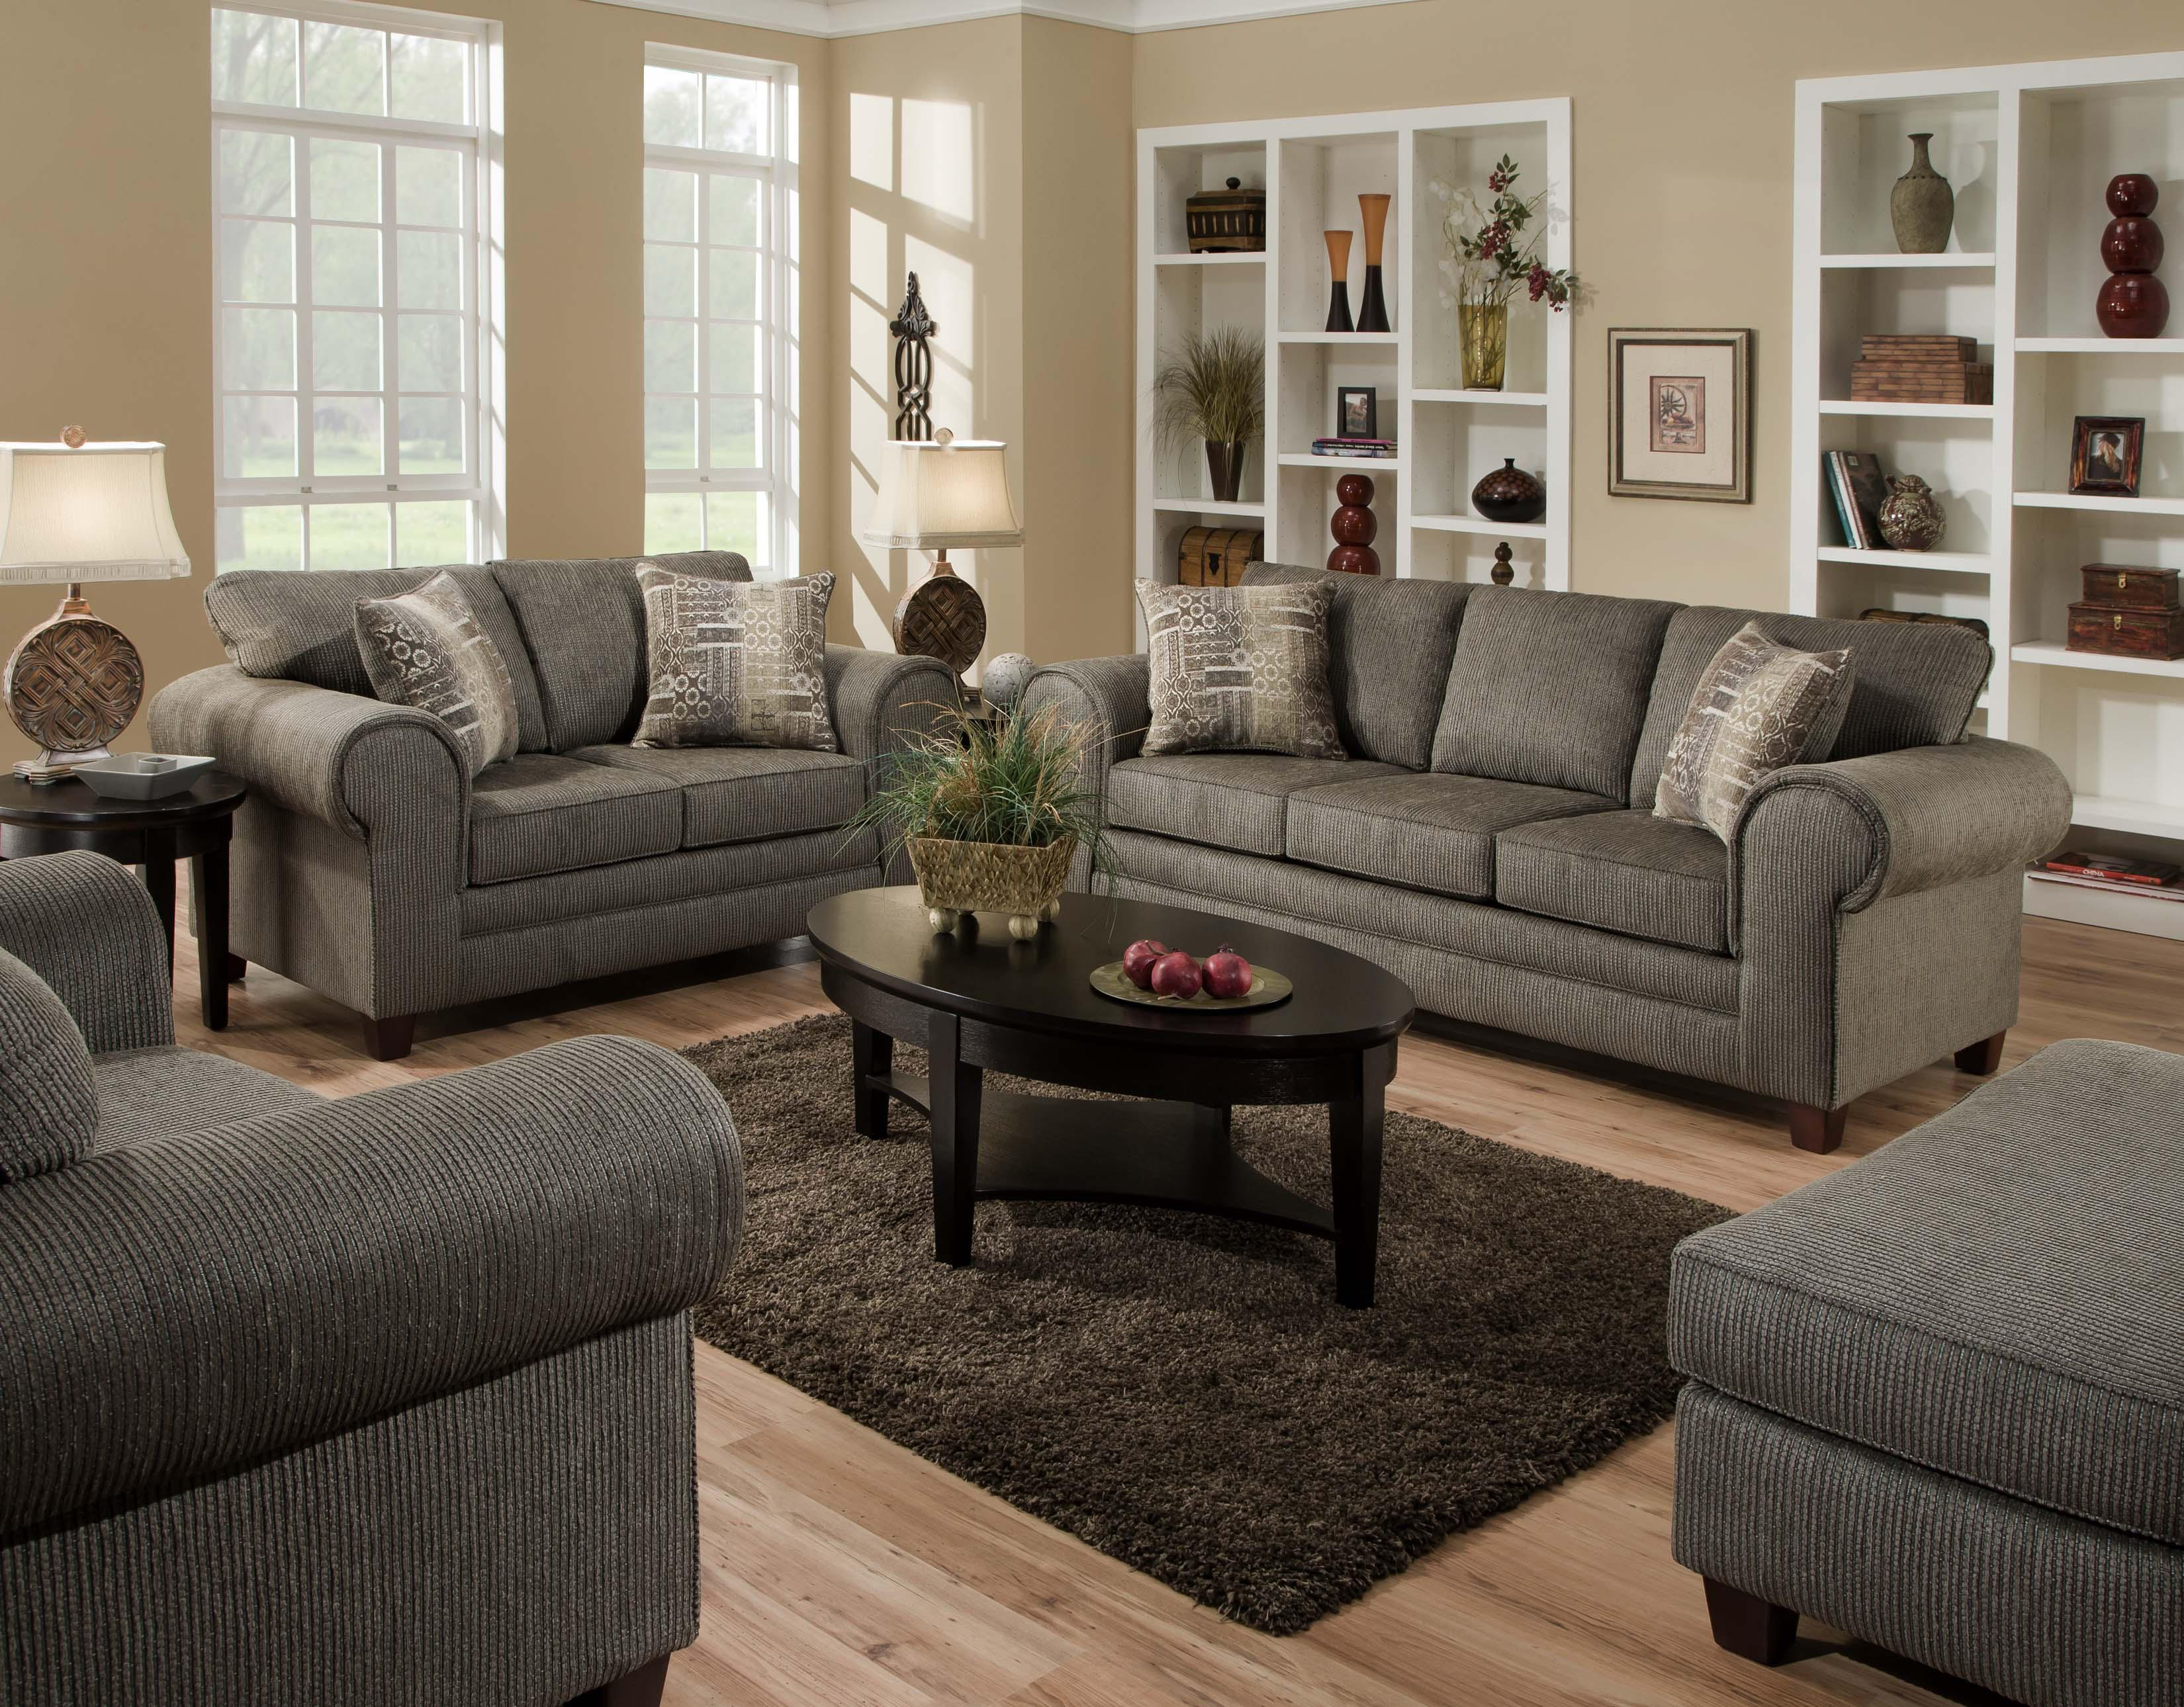 American Furniture 3750  Stationary Living Room Group - Item Number: 5750 Graphite Living Room Group 1